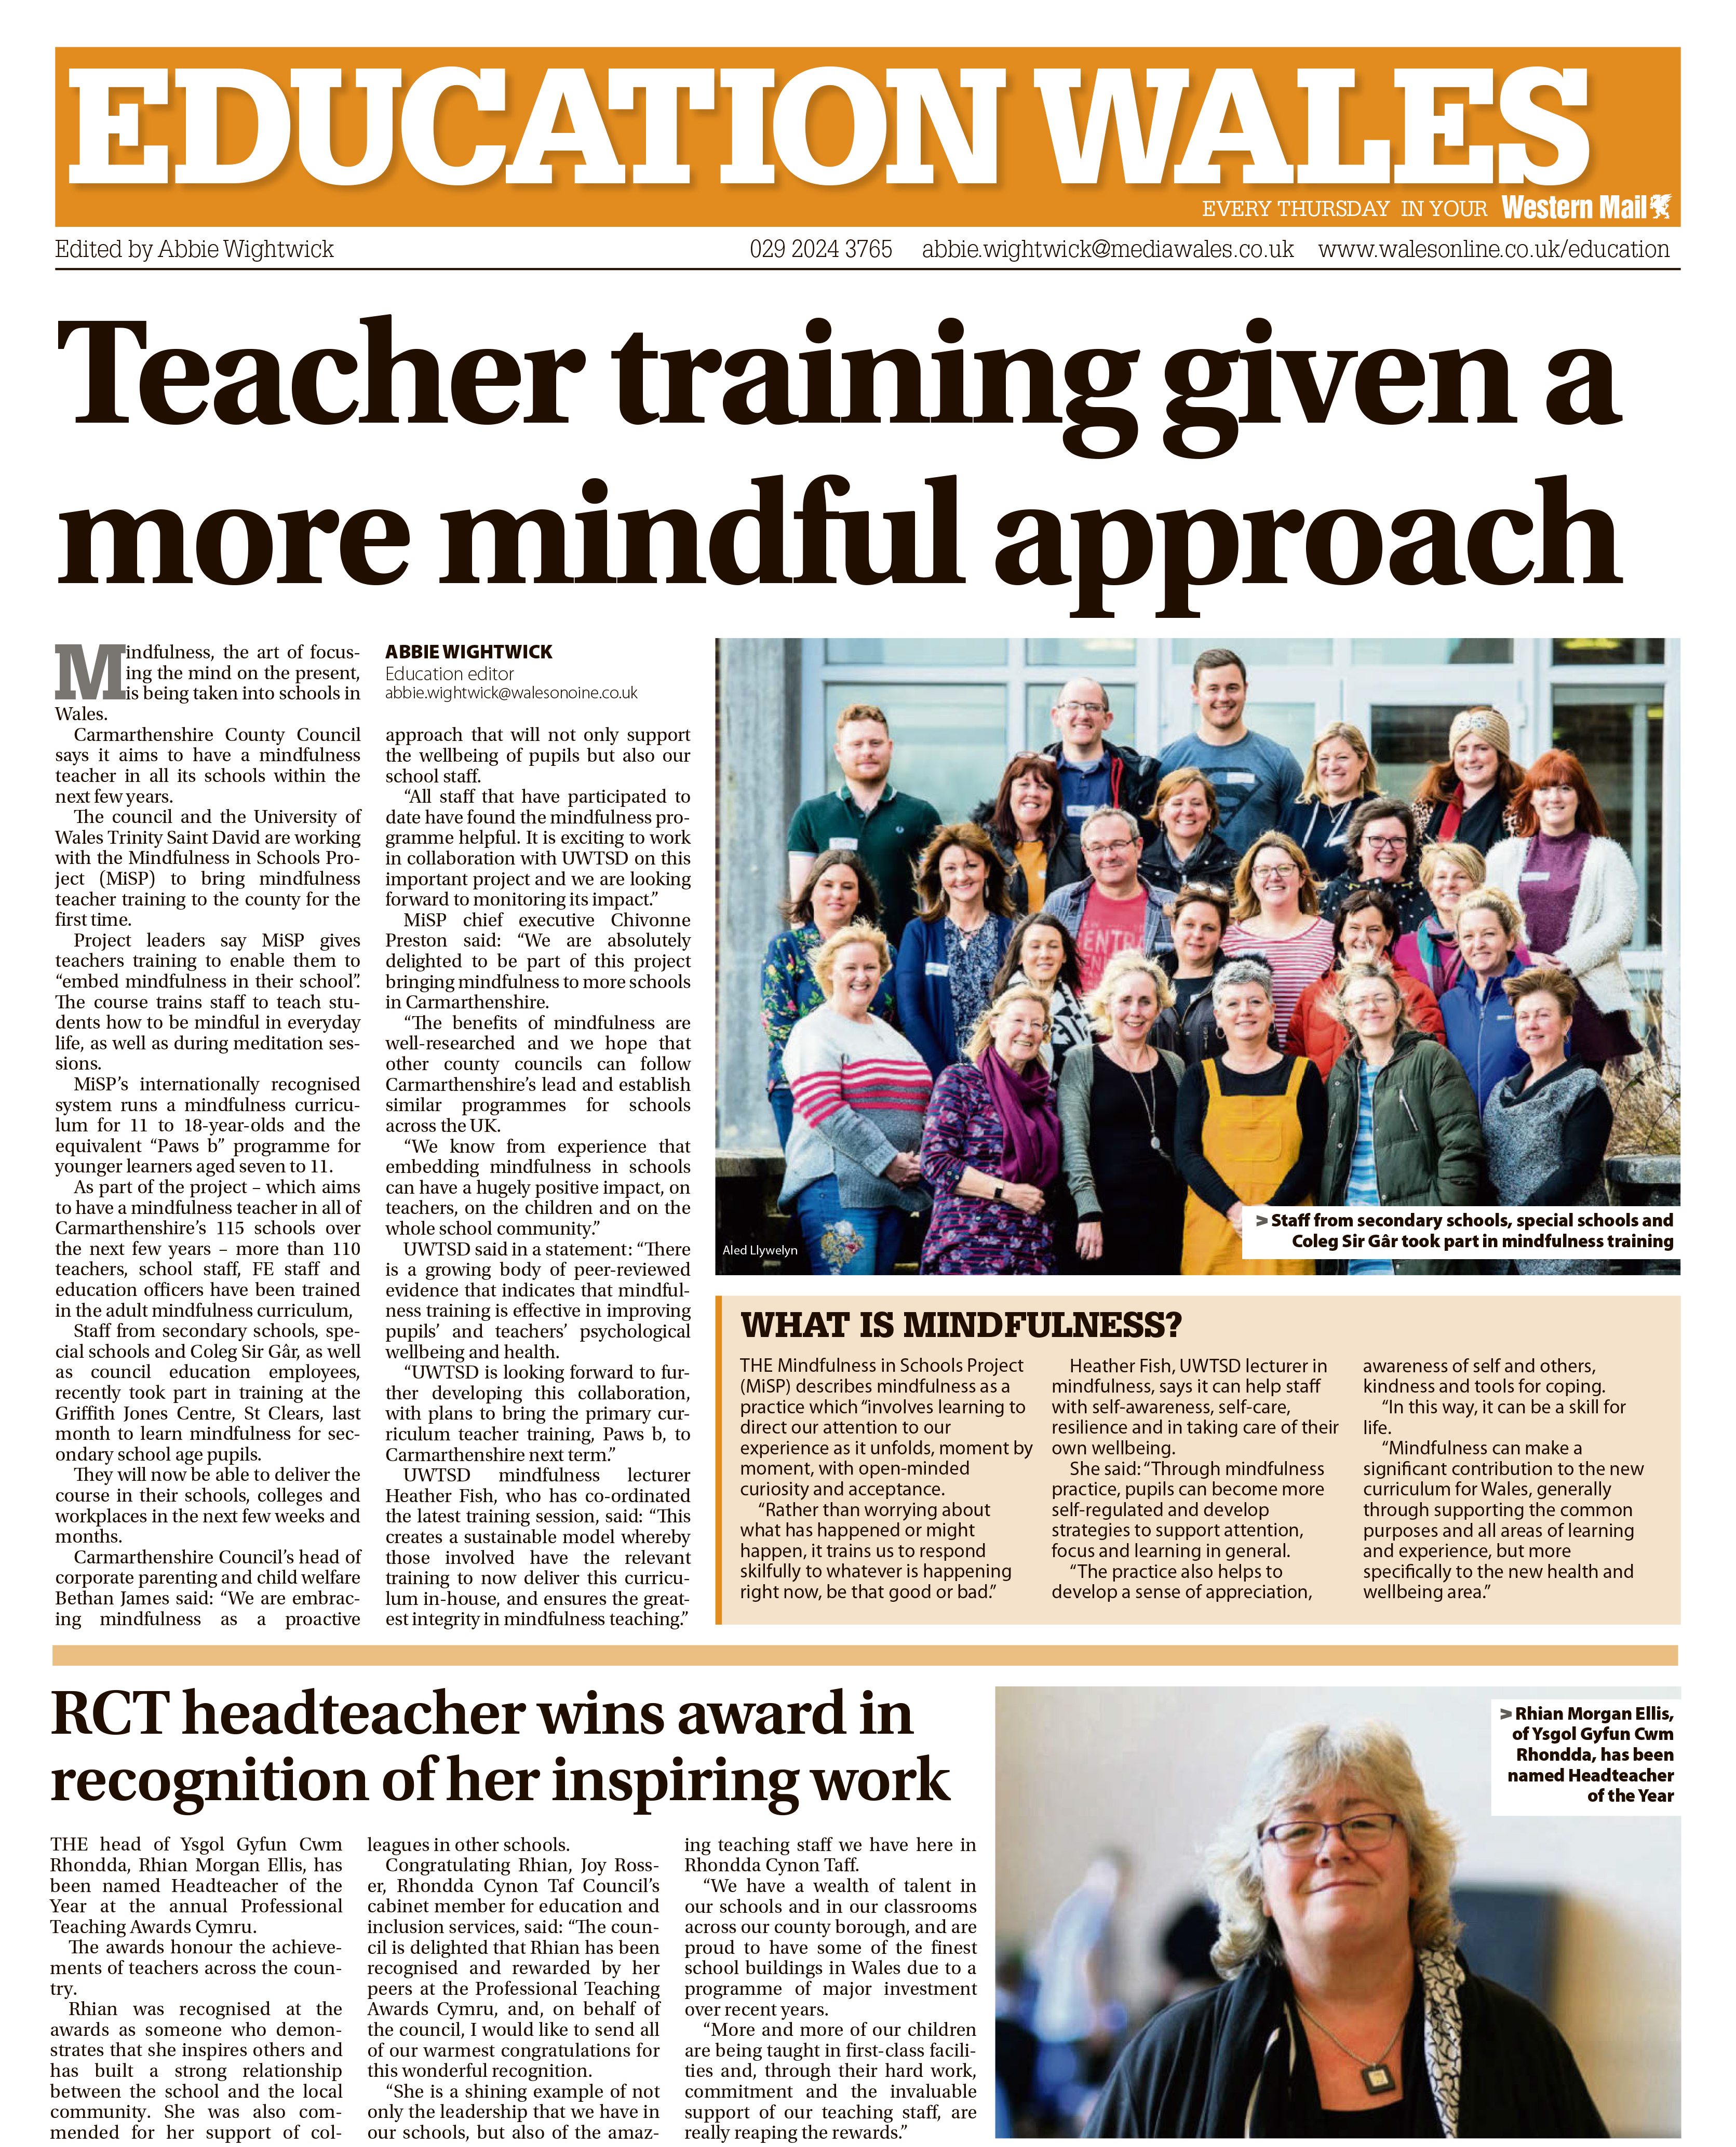 Bringing mindfulness to more schools in Wales | Mindfulness